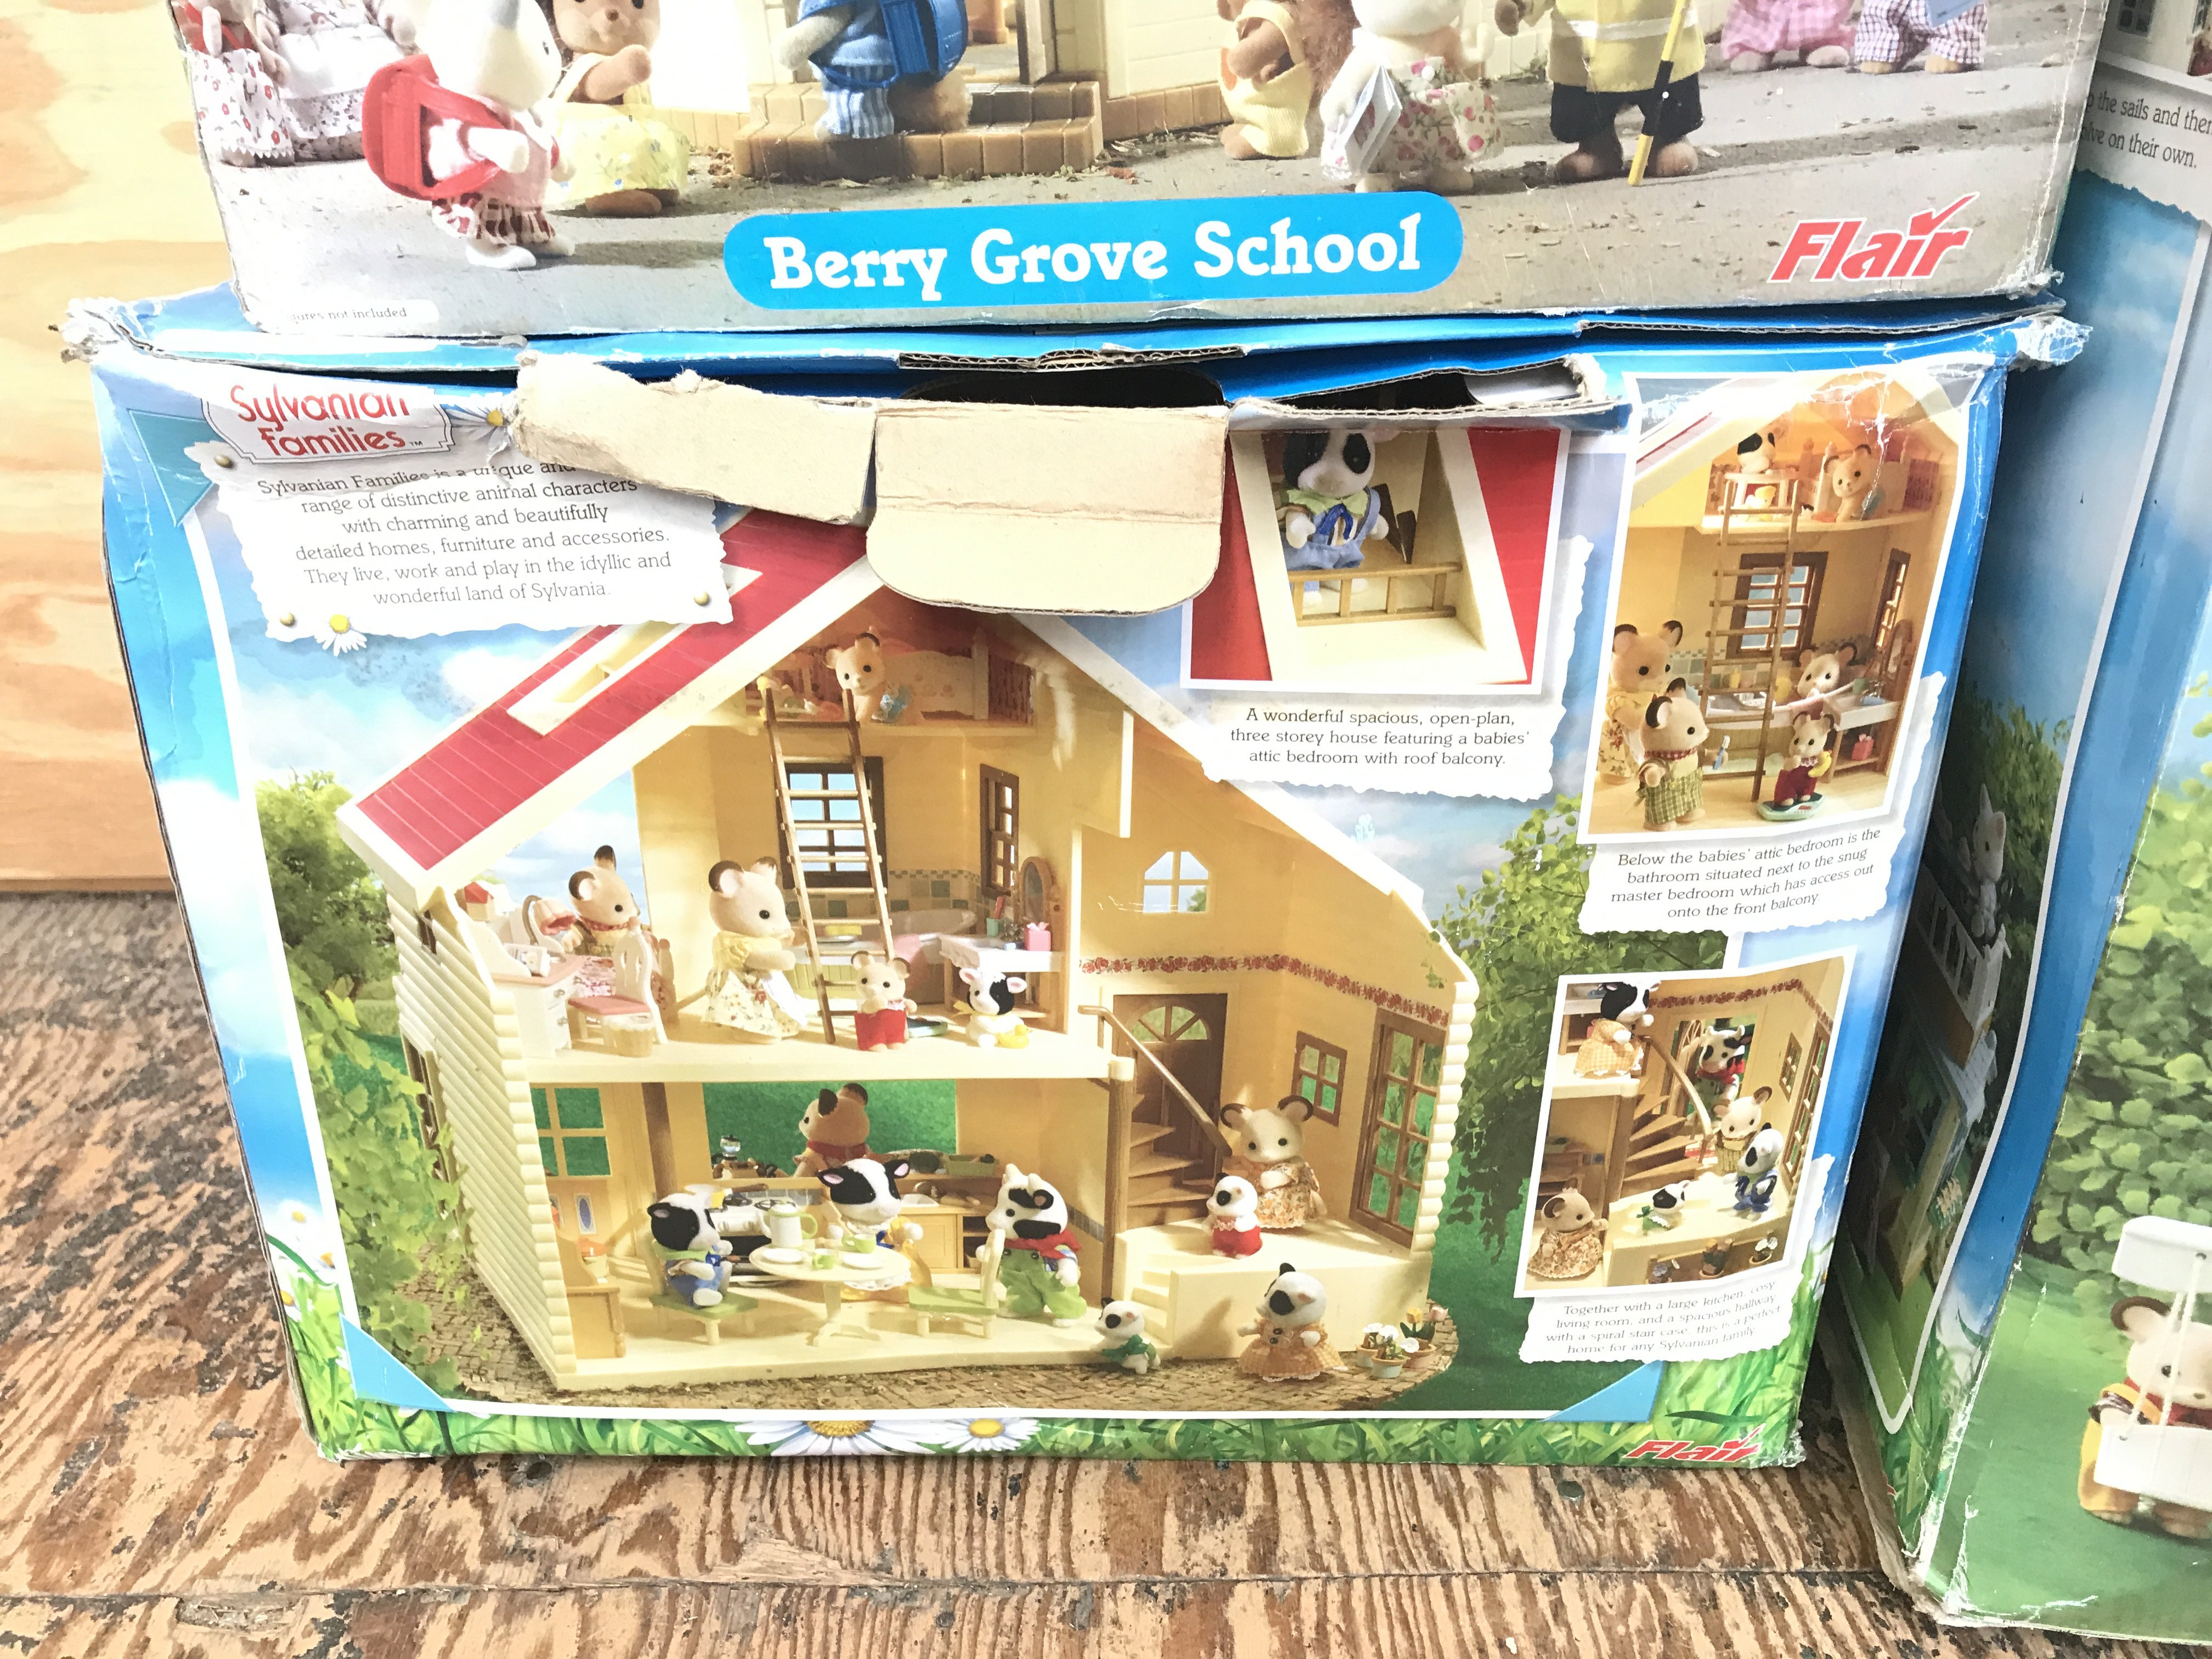 3 X Boxed Sylvanian Families Boxed PlaySets, inclu - Image 3 of 4